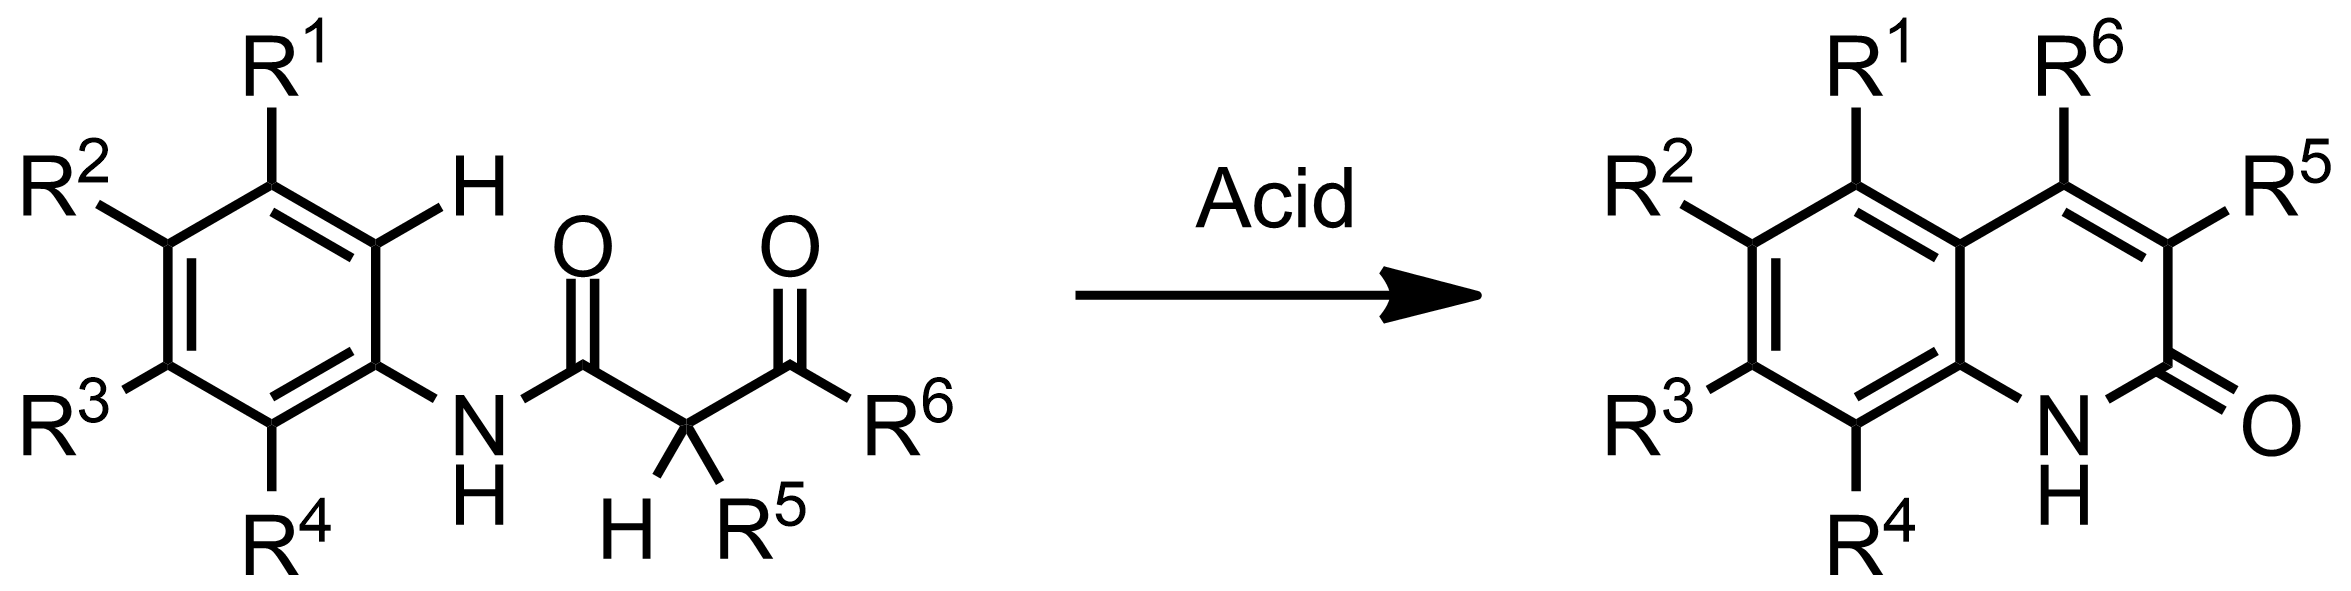 Schematic representation of the Knorr Quinoline Synthesis.